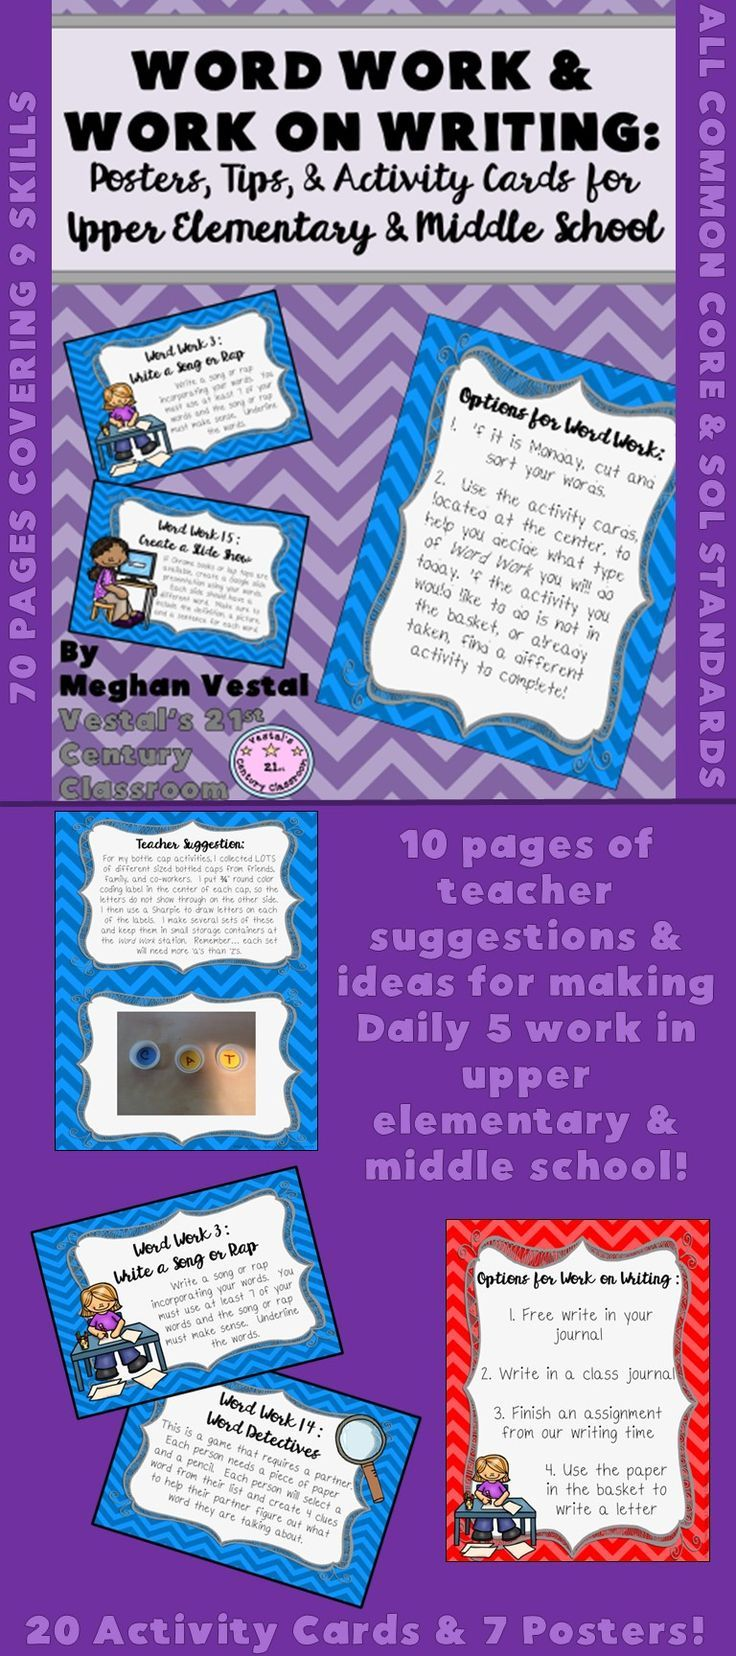 Word Work and Work on Writing activities for upper elementary and middle school can be difficult to come by as a lot of Daily 5 resources are created for primary grades. After several years of experience using Daily 5 (or Daily 3 as we refer to it in my classroom), I have put together all of my upper elementary and middle school strategies, activity ideas, posters, and resources to use with Word Work and Work on Writing stations!